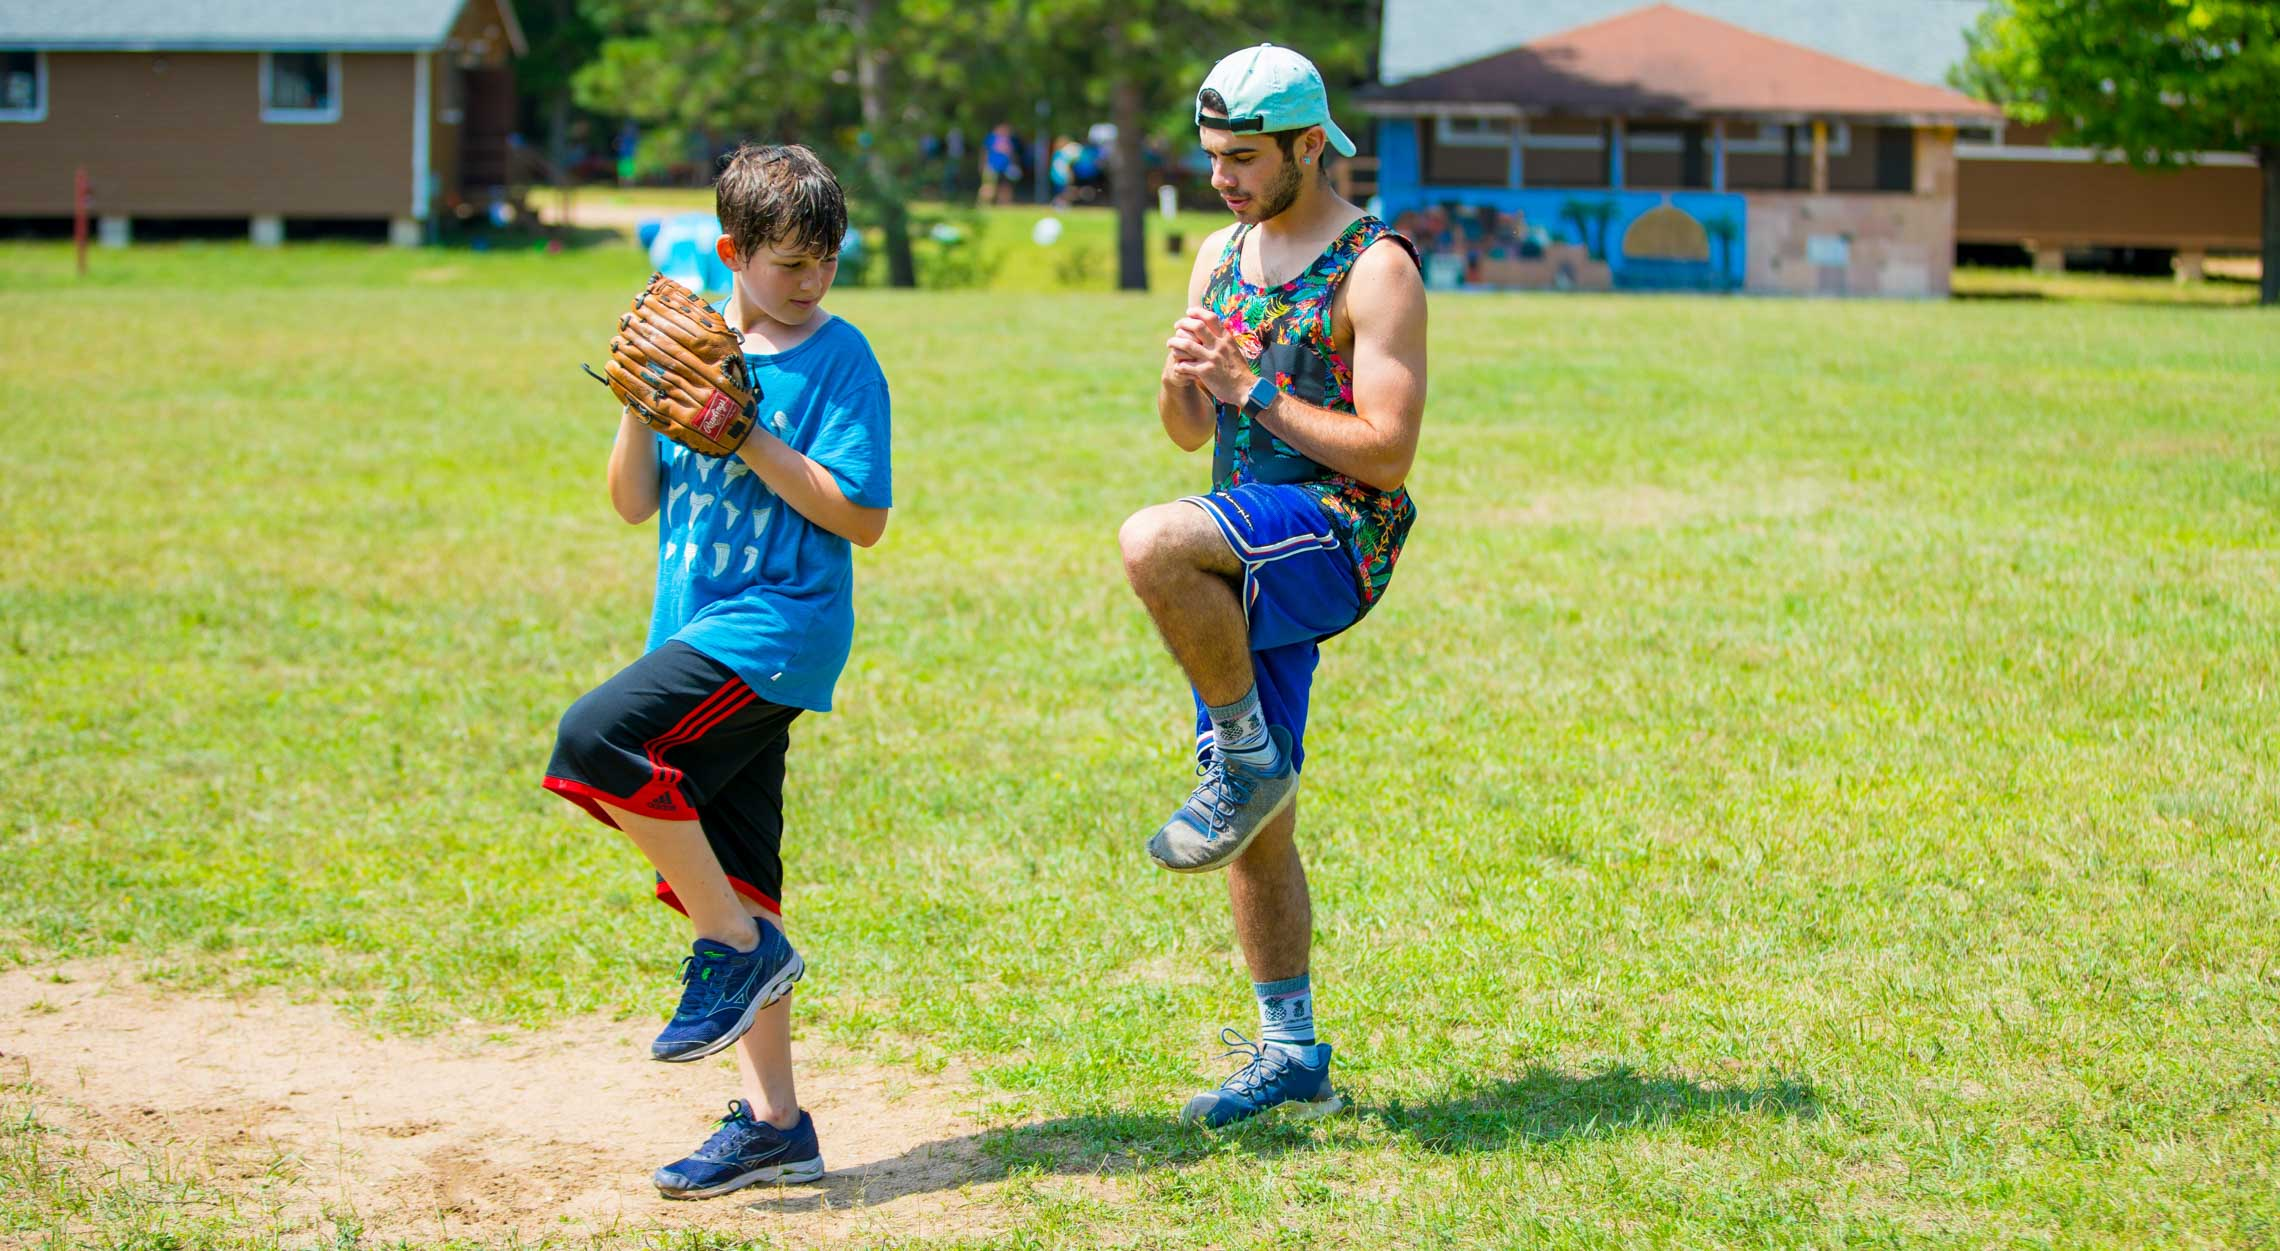 Baseball instructor teaching camper how to throw